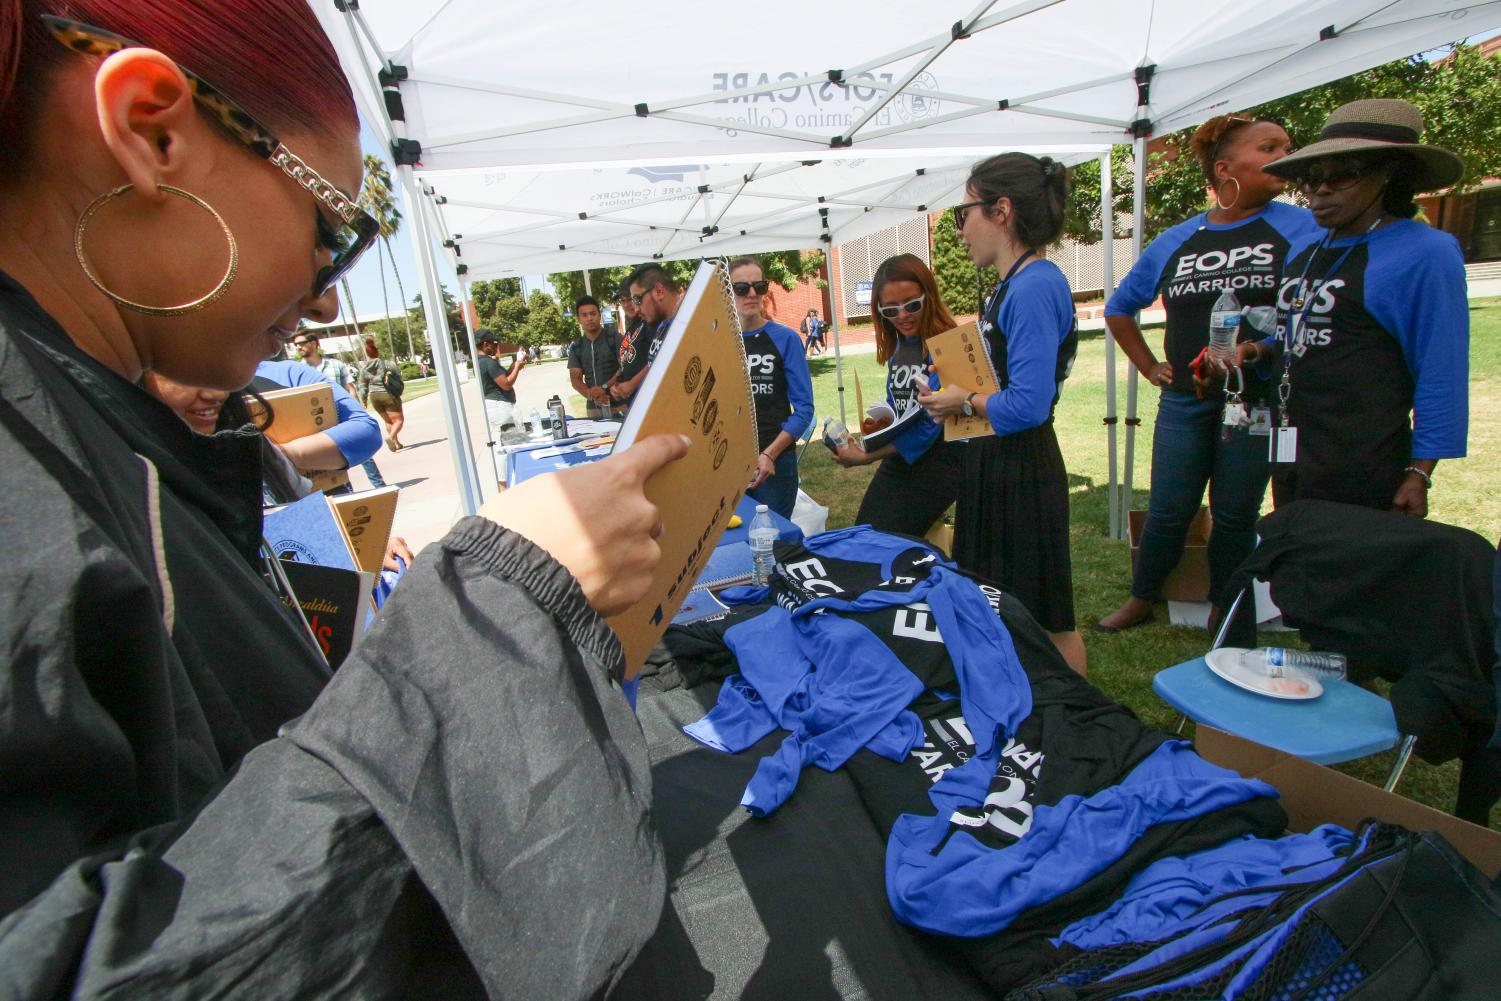 The EOPS booth gives out free school materials and gear to students at its 50 year celebration at the Library Lawn Thursday, Sept. 5. The event meant a lot for Assistant Director David Brown as he has a long history with the program, he said.  Rosemary Montalvo/The Union